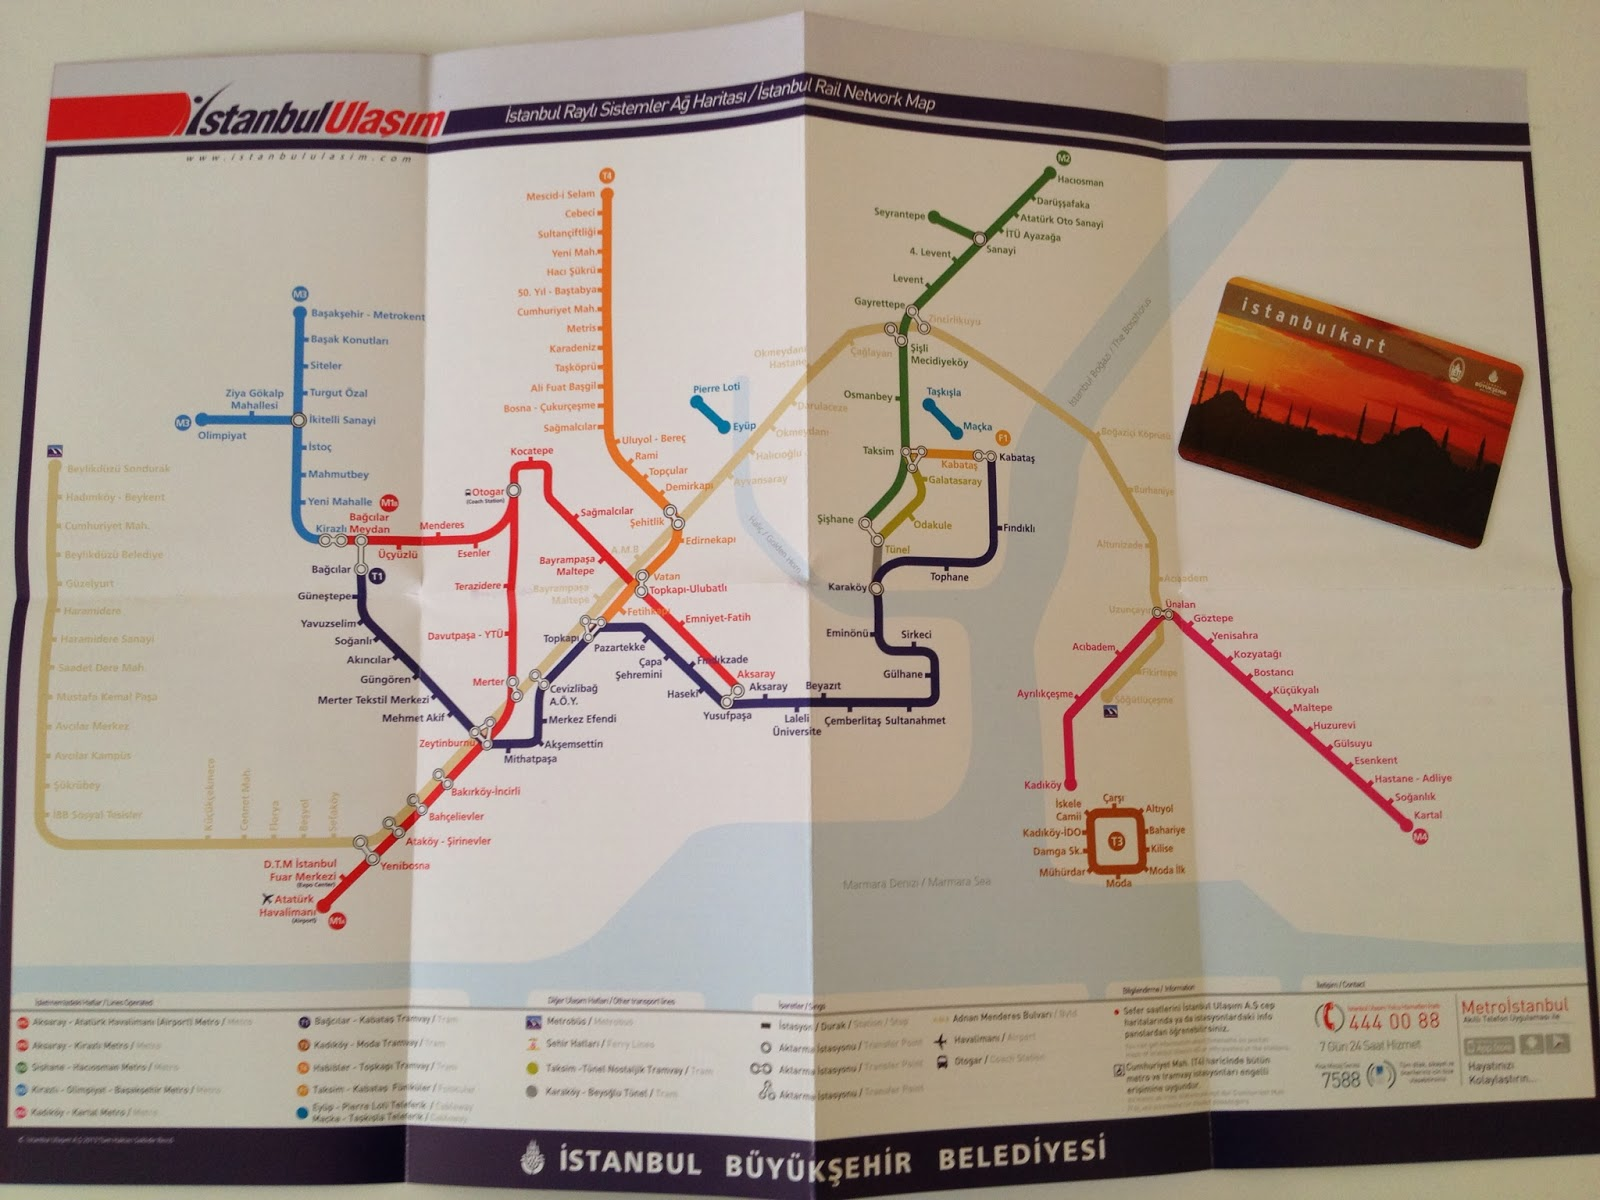 Istanbul - I'm a big transit buff so I was super excited to get a Turkish metro card!